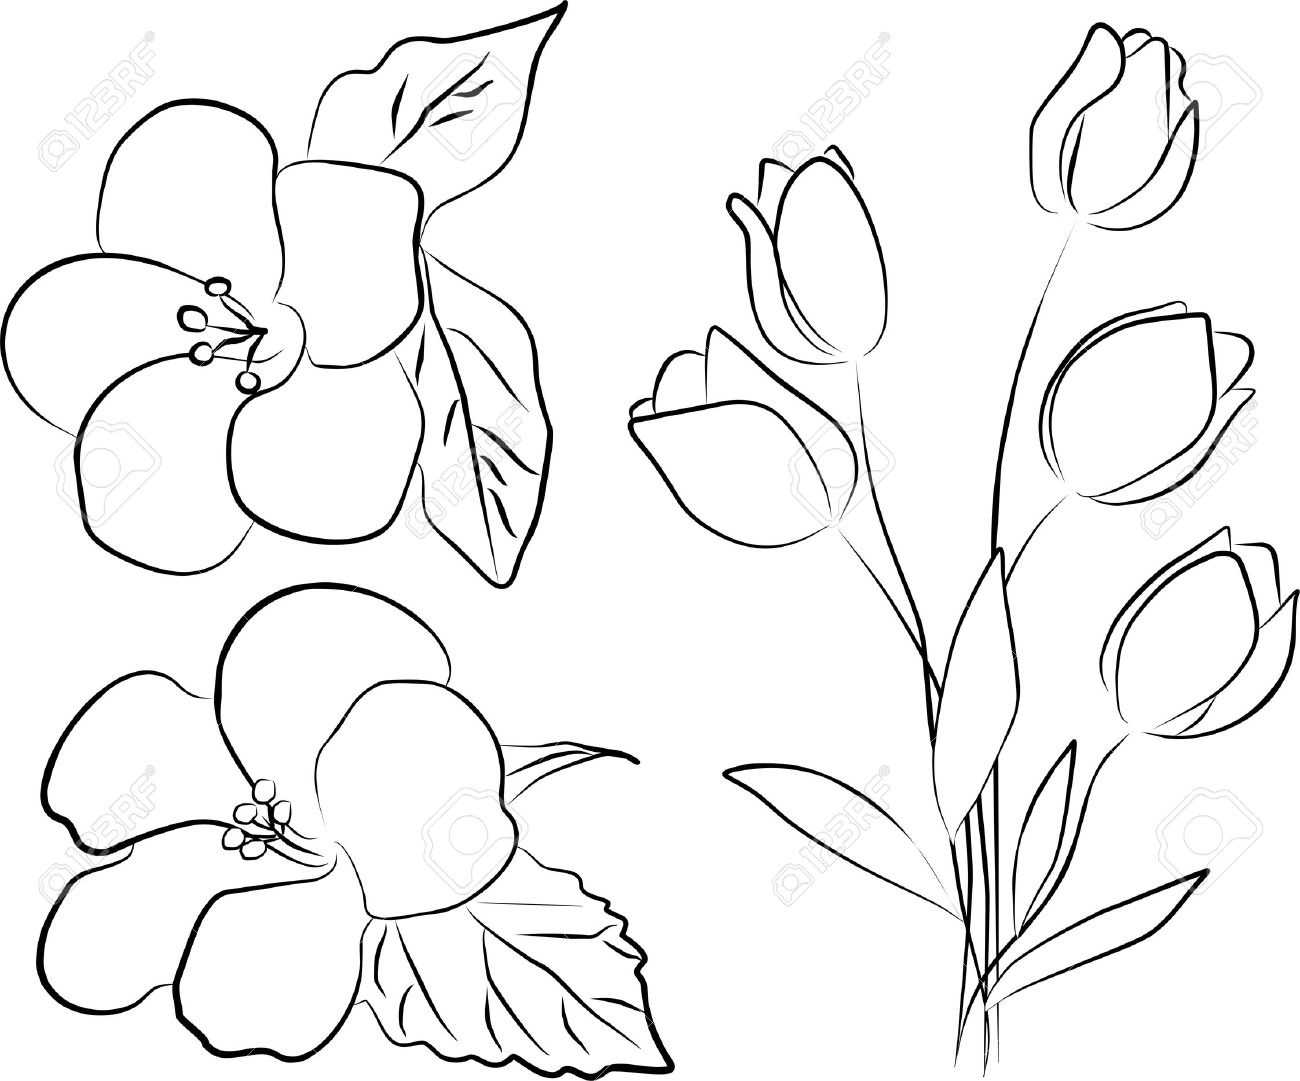 Flower Bouquets Drawing At Getdrawings Free For Personal Use